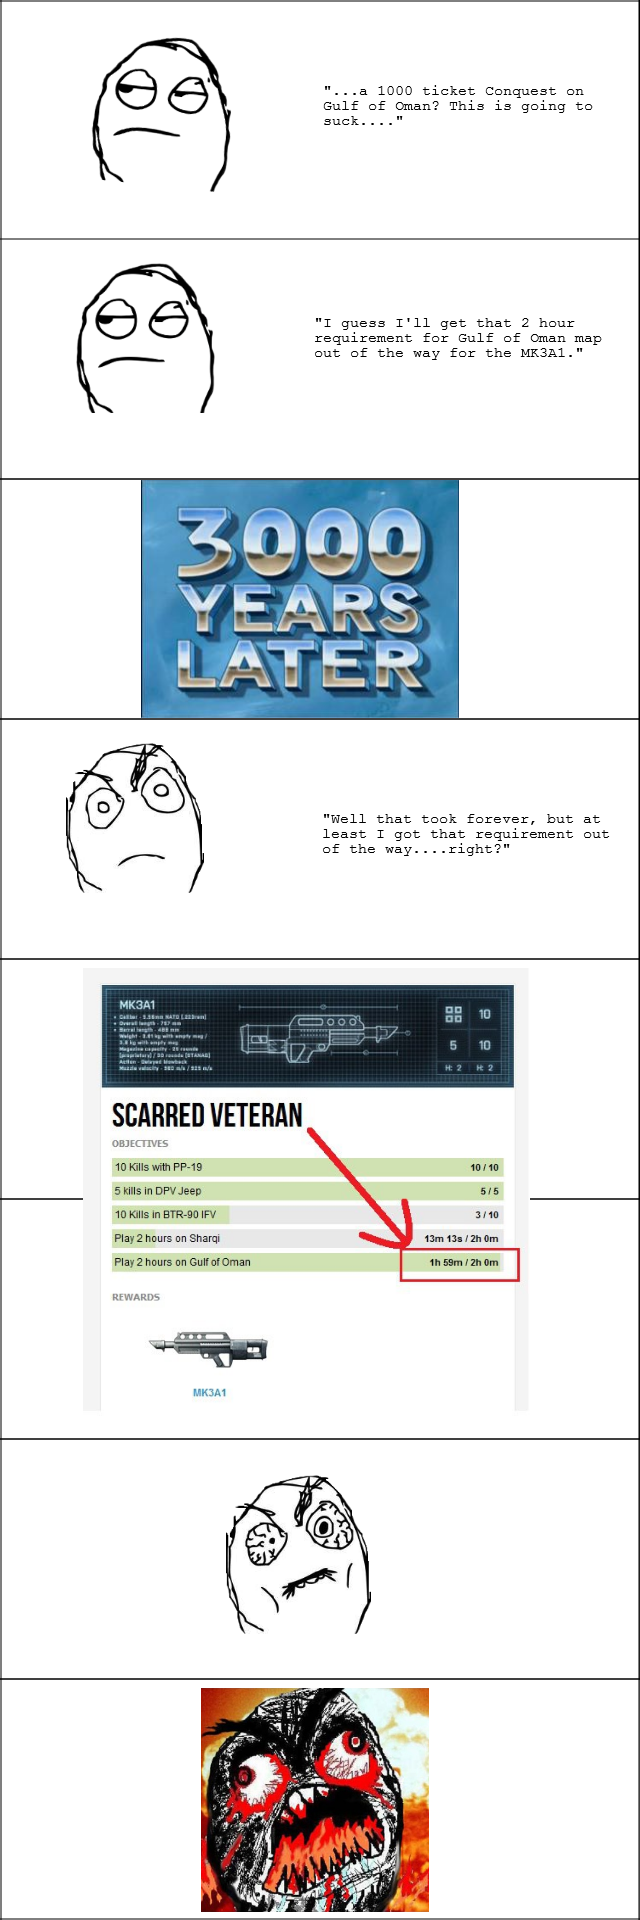 Battlefield 3 Hates Me. Every....single....time. a 1000 ticket Conquest en Gulf of Oman? This is geing T guess I' ll get that 2 heur requirement fer Gulf of (Dm